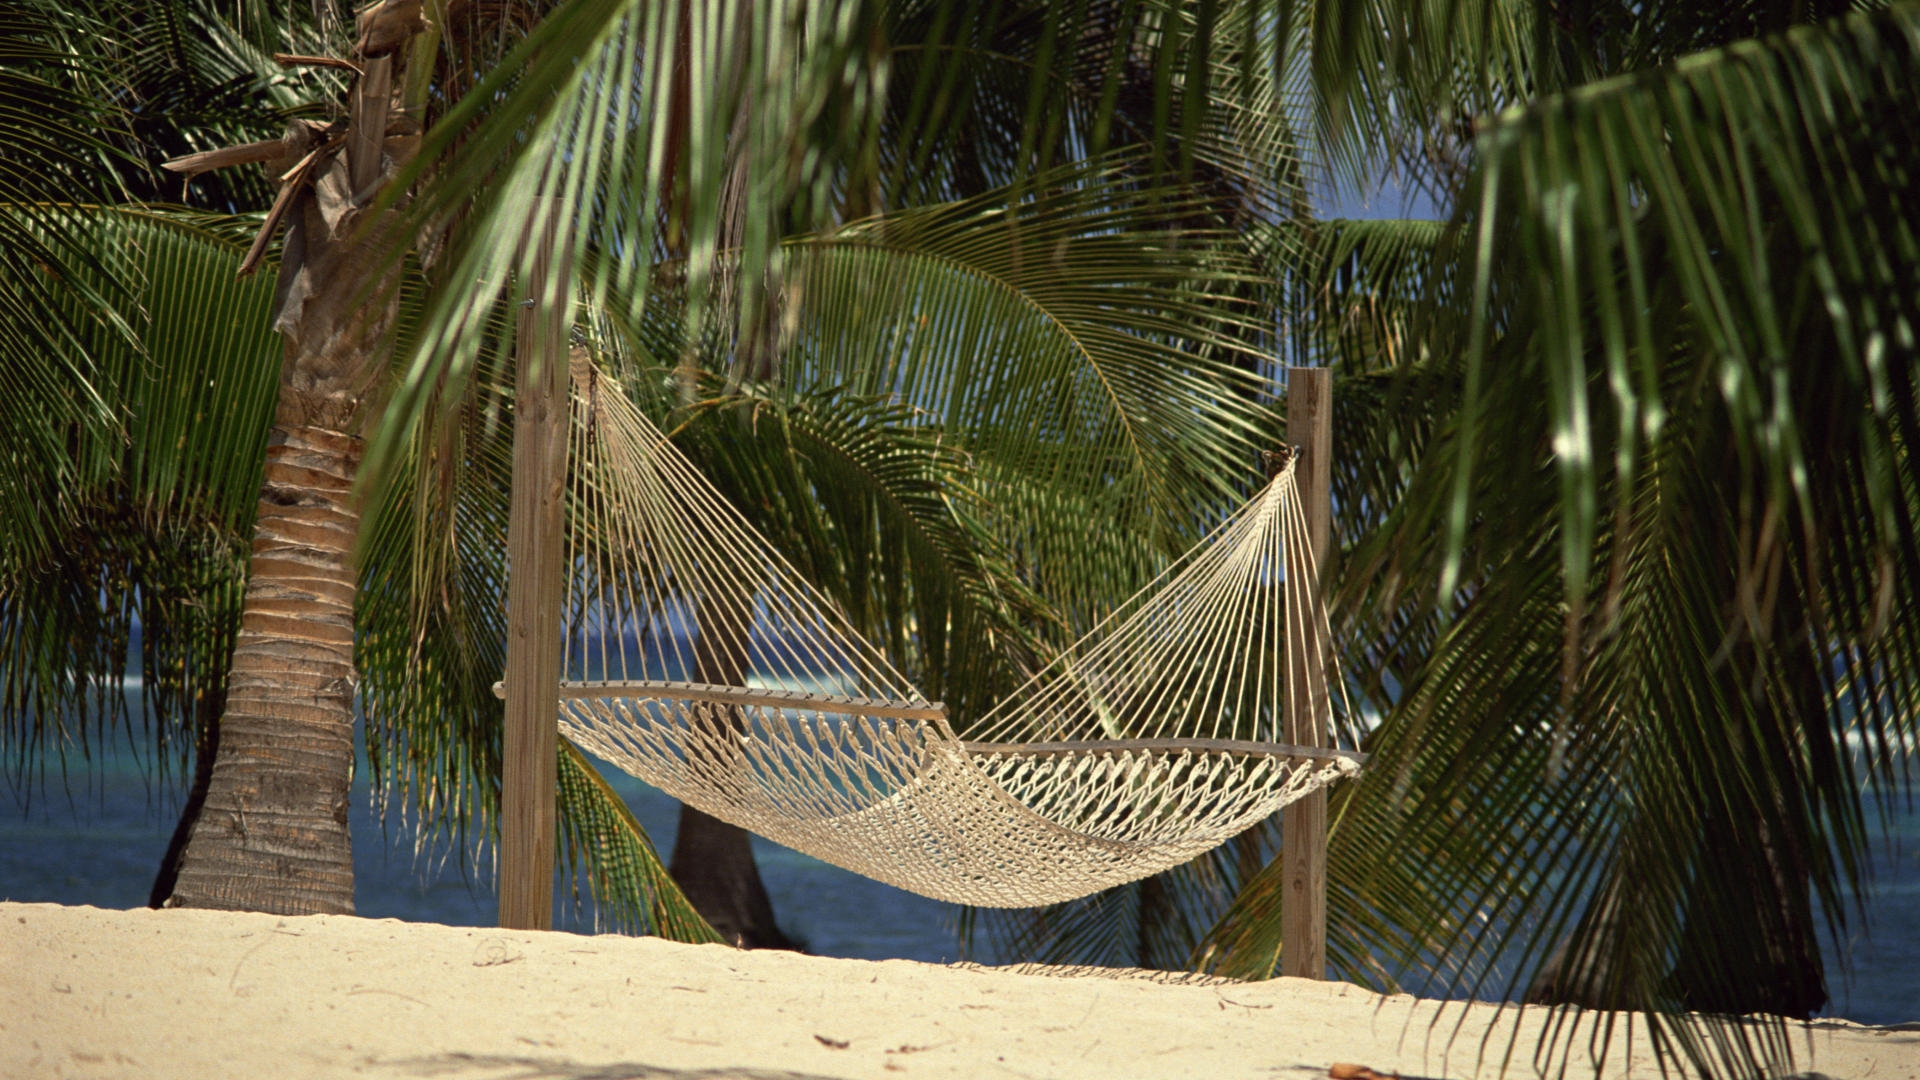 Download Wallpaper 1920x1080 Hammock Palm Trees Sand